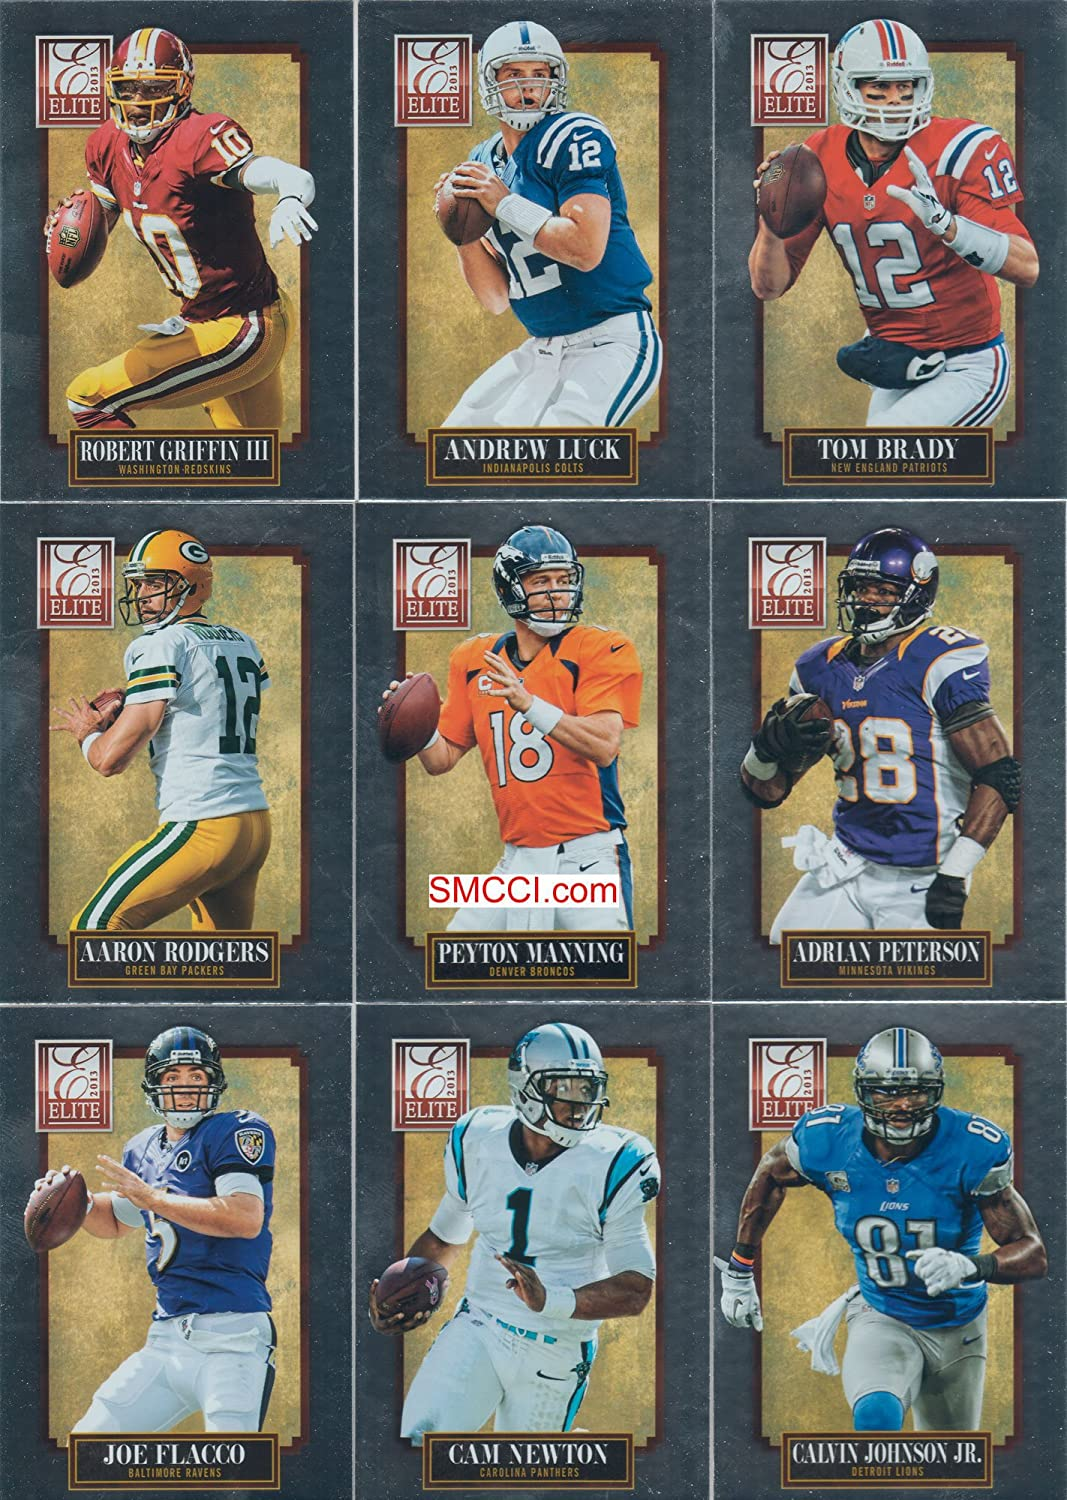 2013 Panini Elite NFL Football Series Complete Mint 100 Card Veteran Players Basic Hand Collated Set football forever football hits